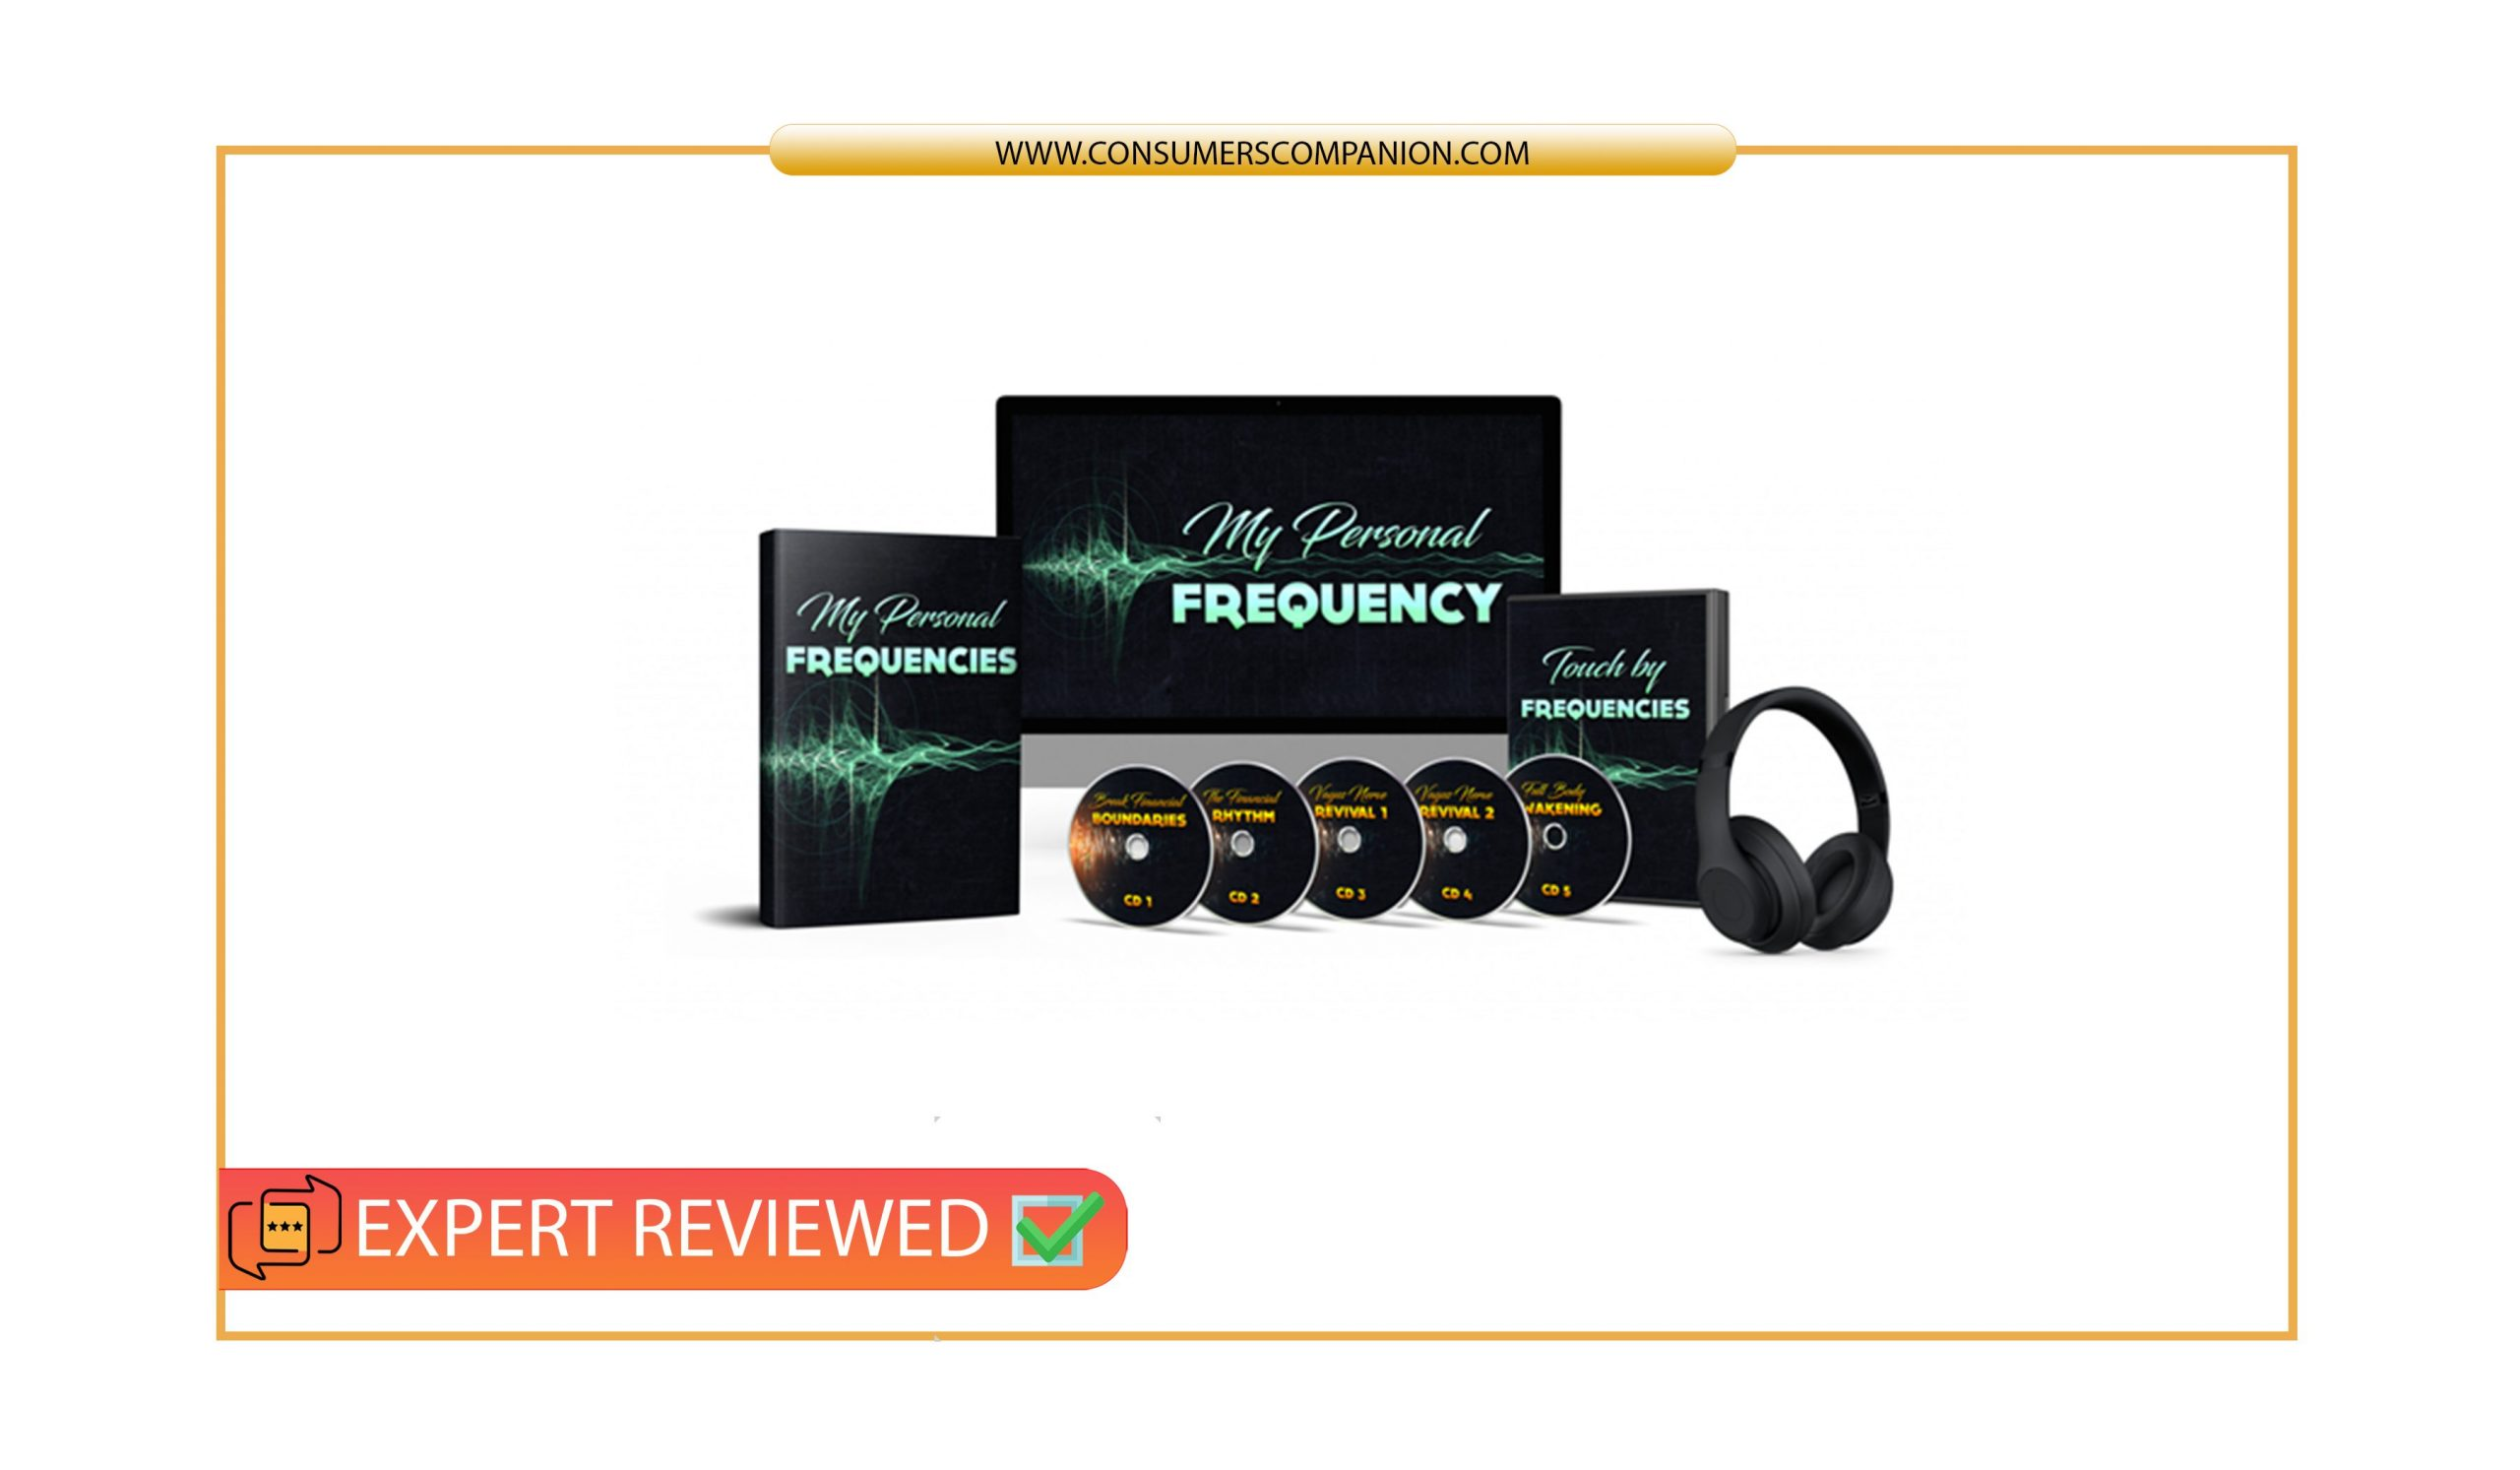 My personal frequency reviews